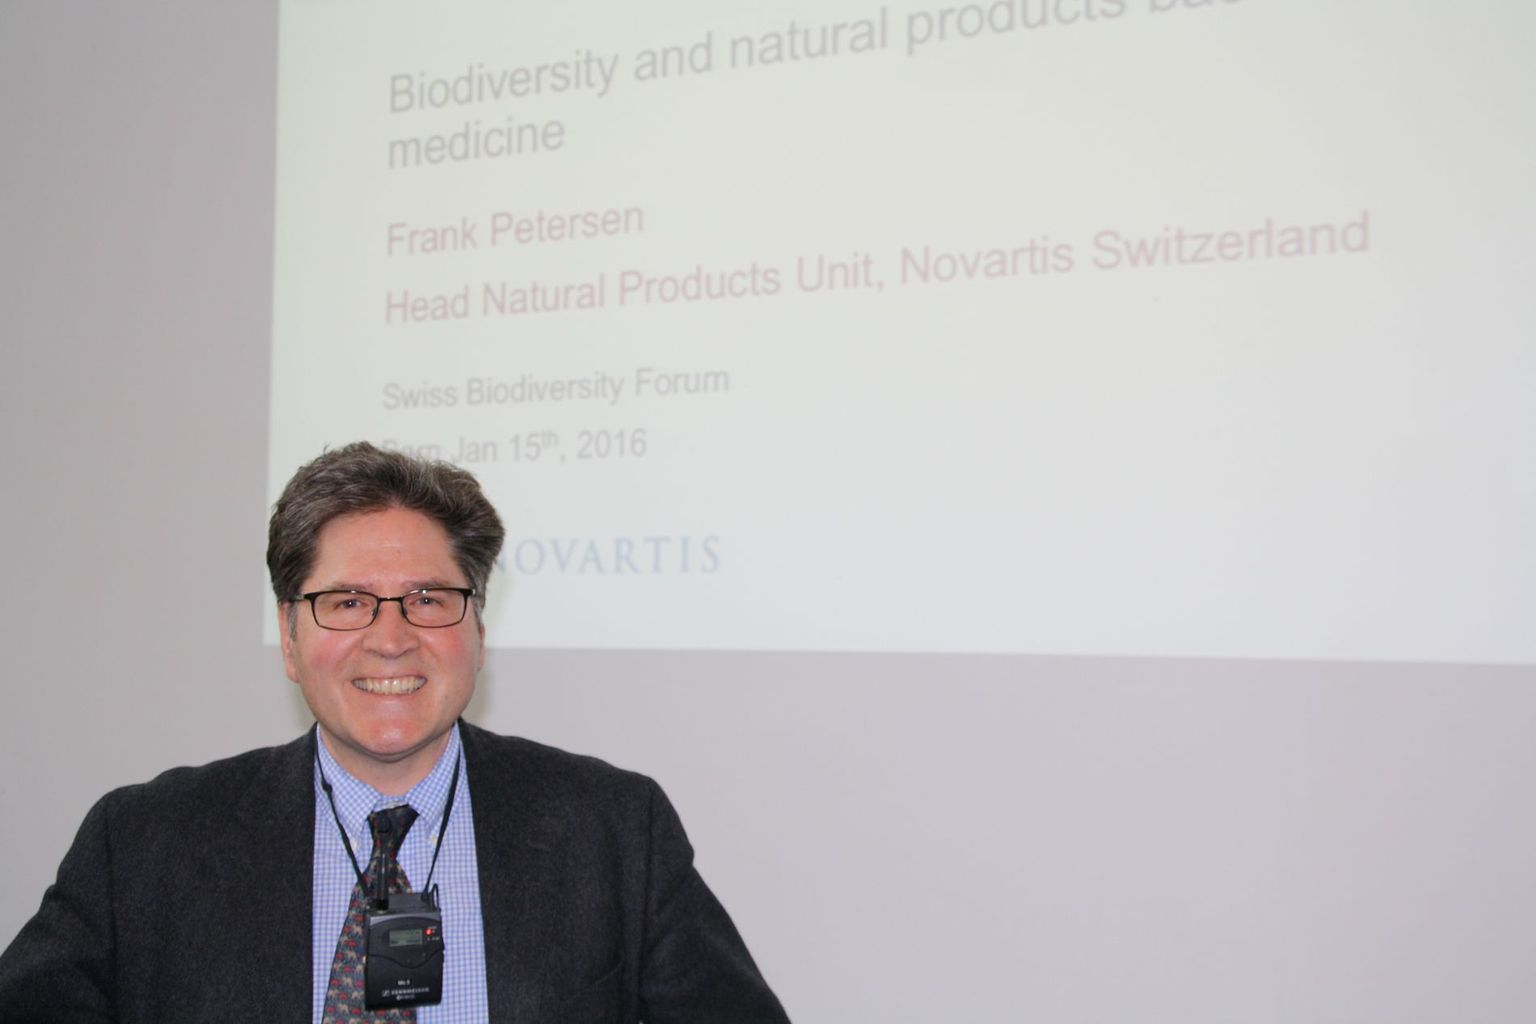 SWIFCOB 16 : Frank Petersen, Novartis